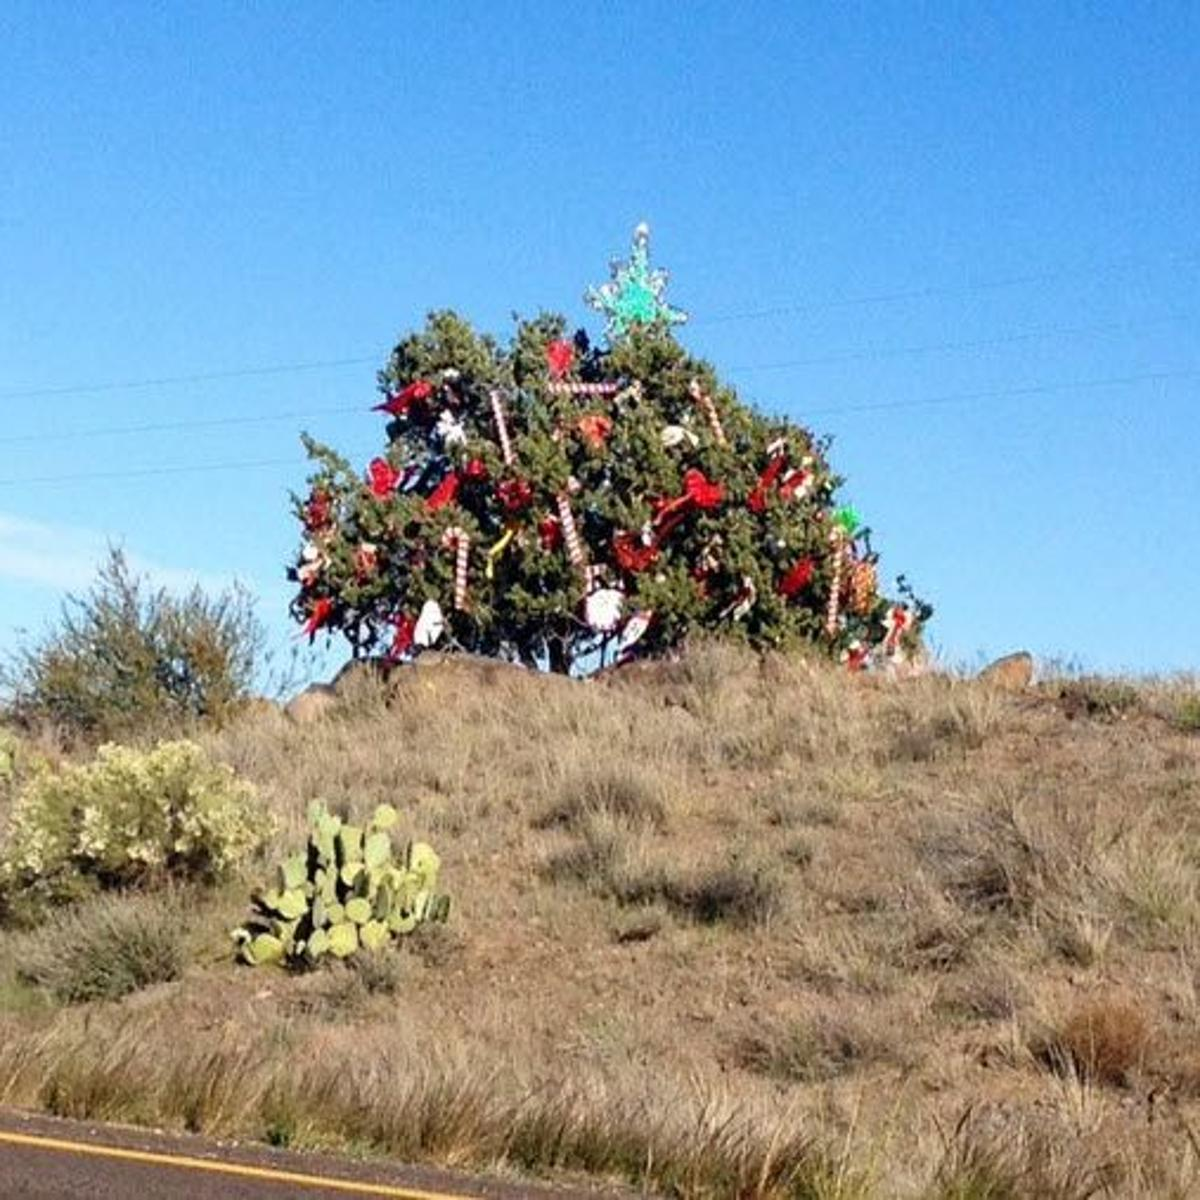 b059cc393b932 Santa's helpers decorate the 'mystery tree' at Sunset Point on I-17 ...